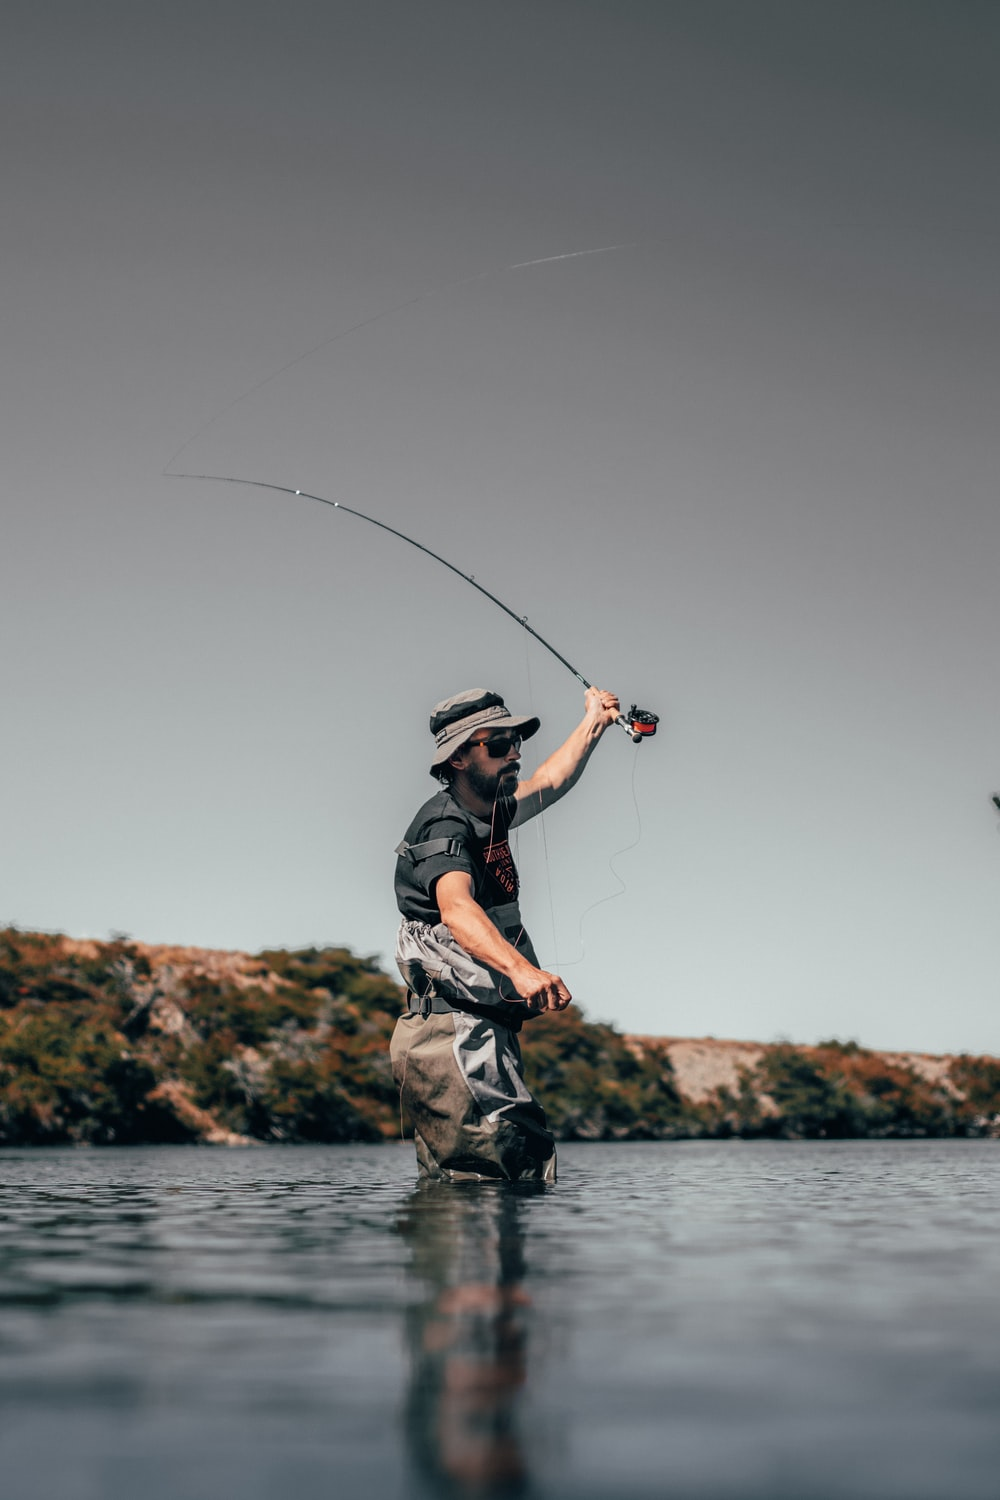 man about to catch fish